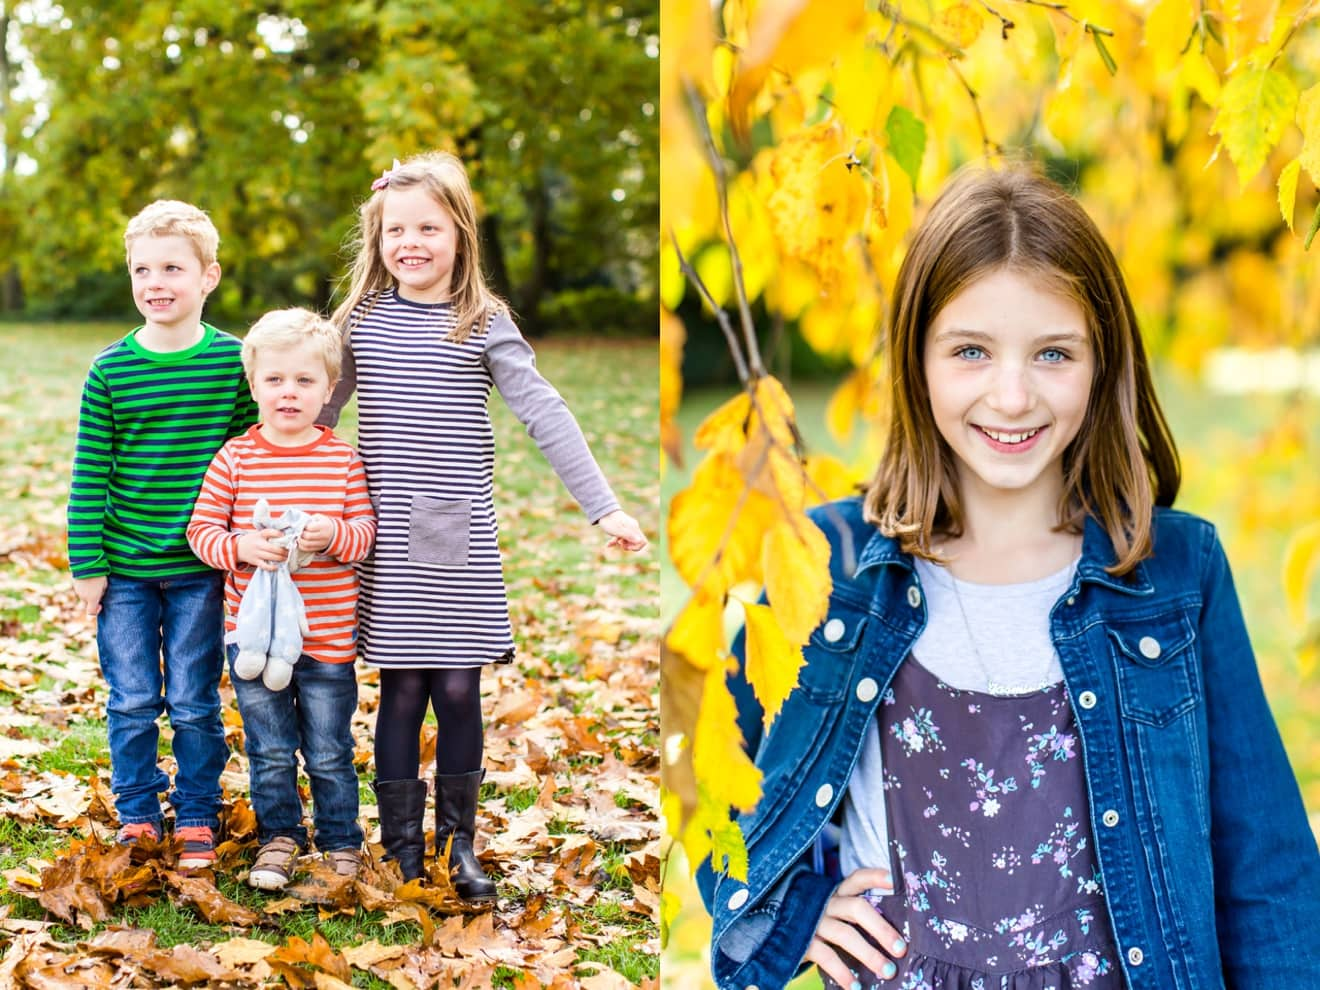 15-autumn-mini-session-family-surrey-eddie-judd-photography-eddie-judd-photography